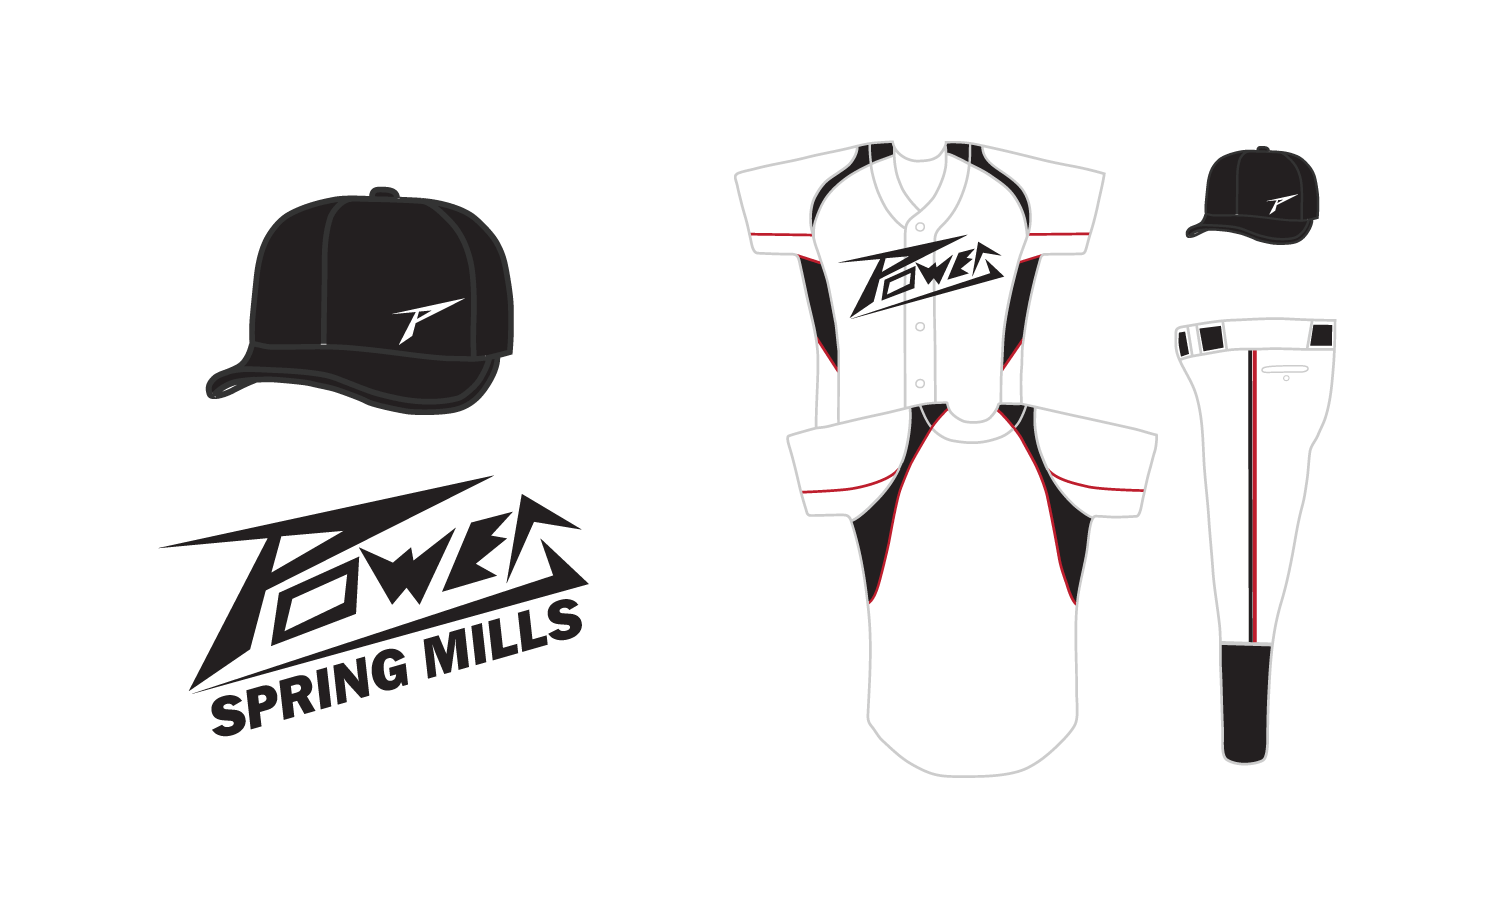 Spring Mills Power Logo and Uniform text